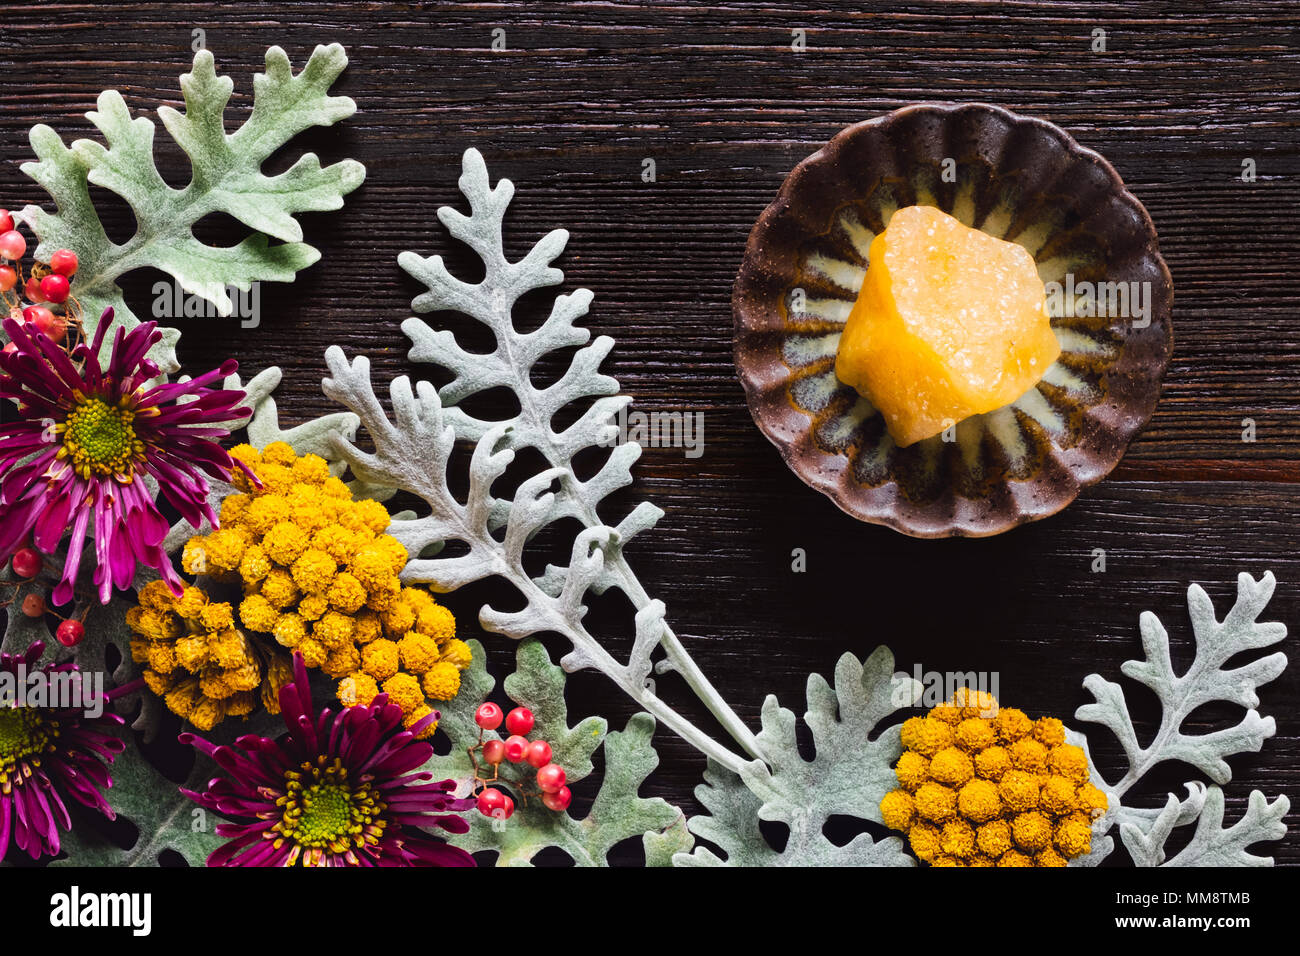 Yellow Aventurine Crystal with Dusty Miller, Clustered Everlasting and Chrysanthemums on Dark Table with Space for Copy - Stock Image